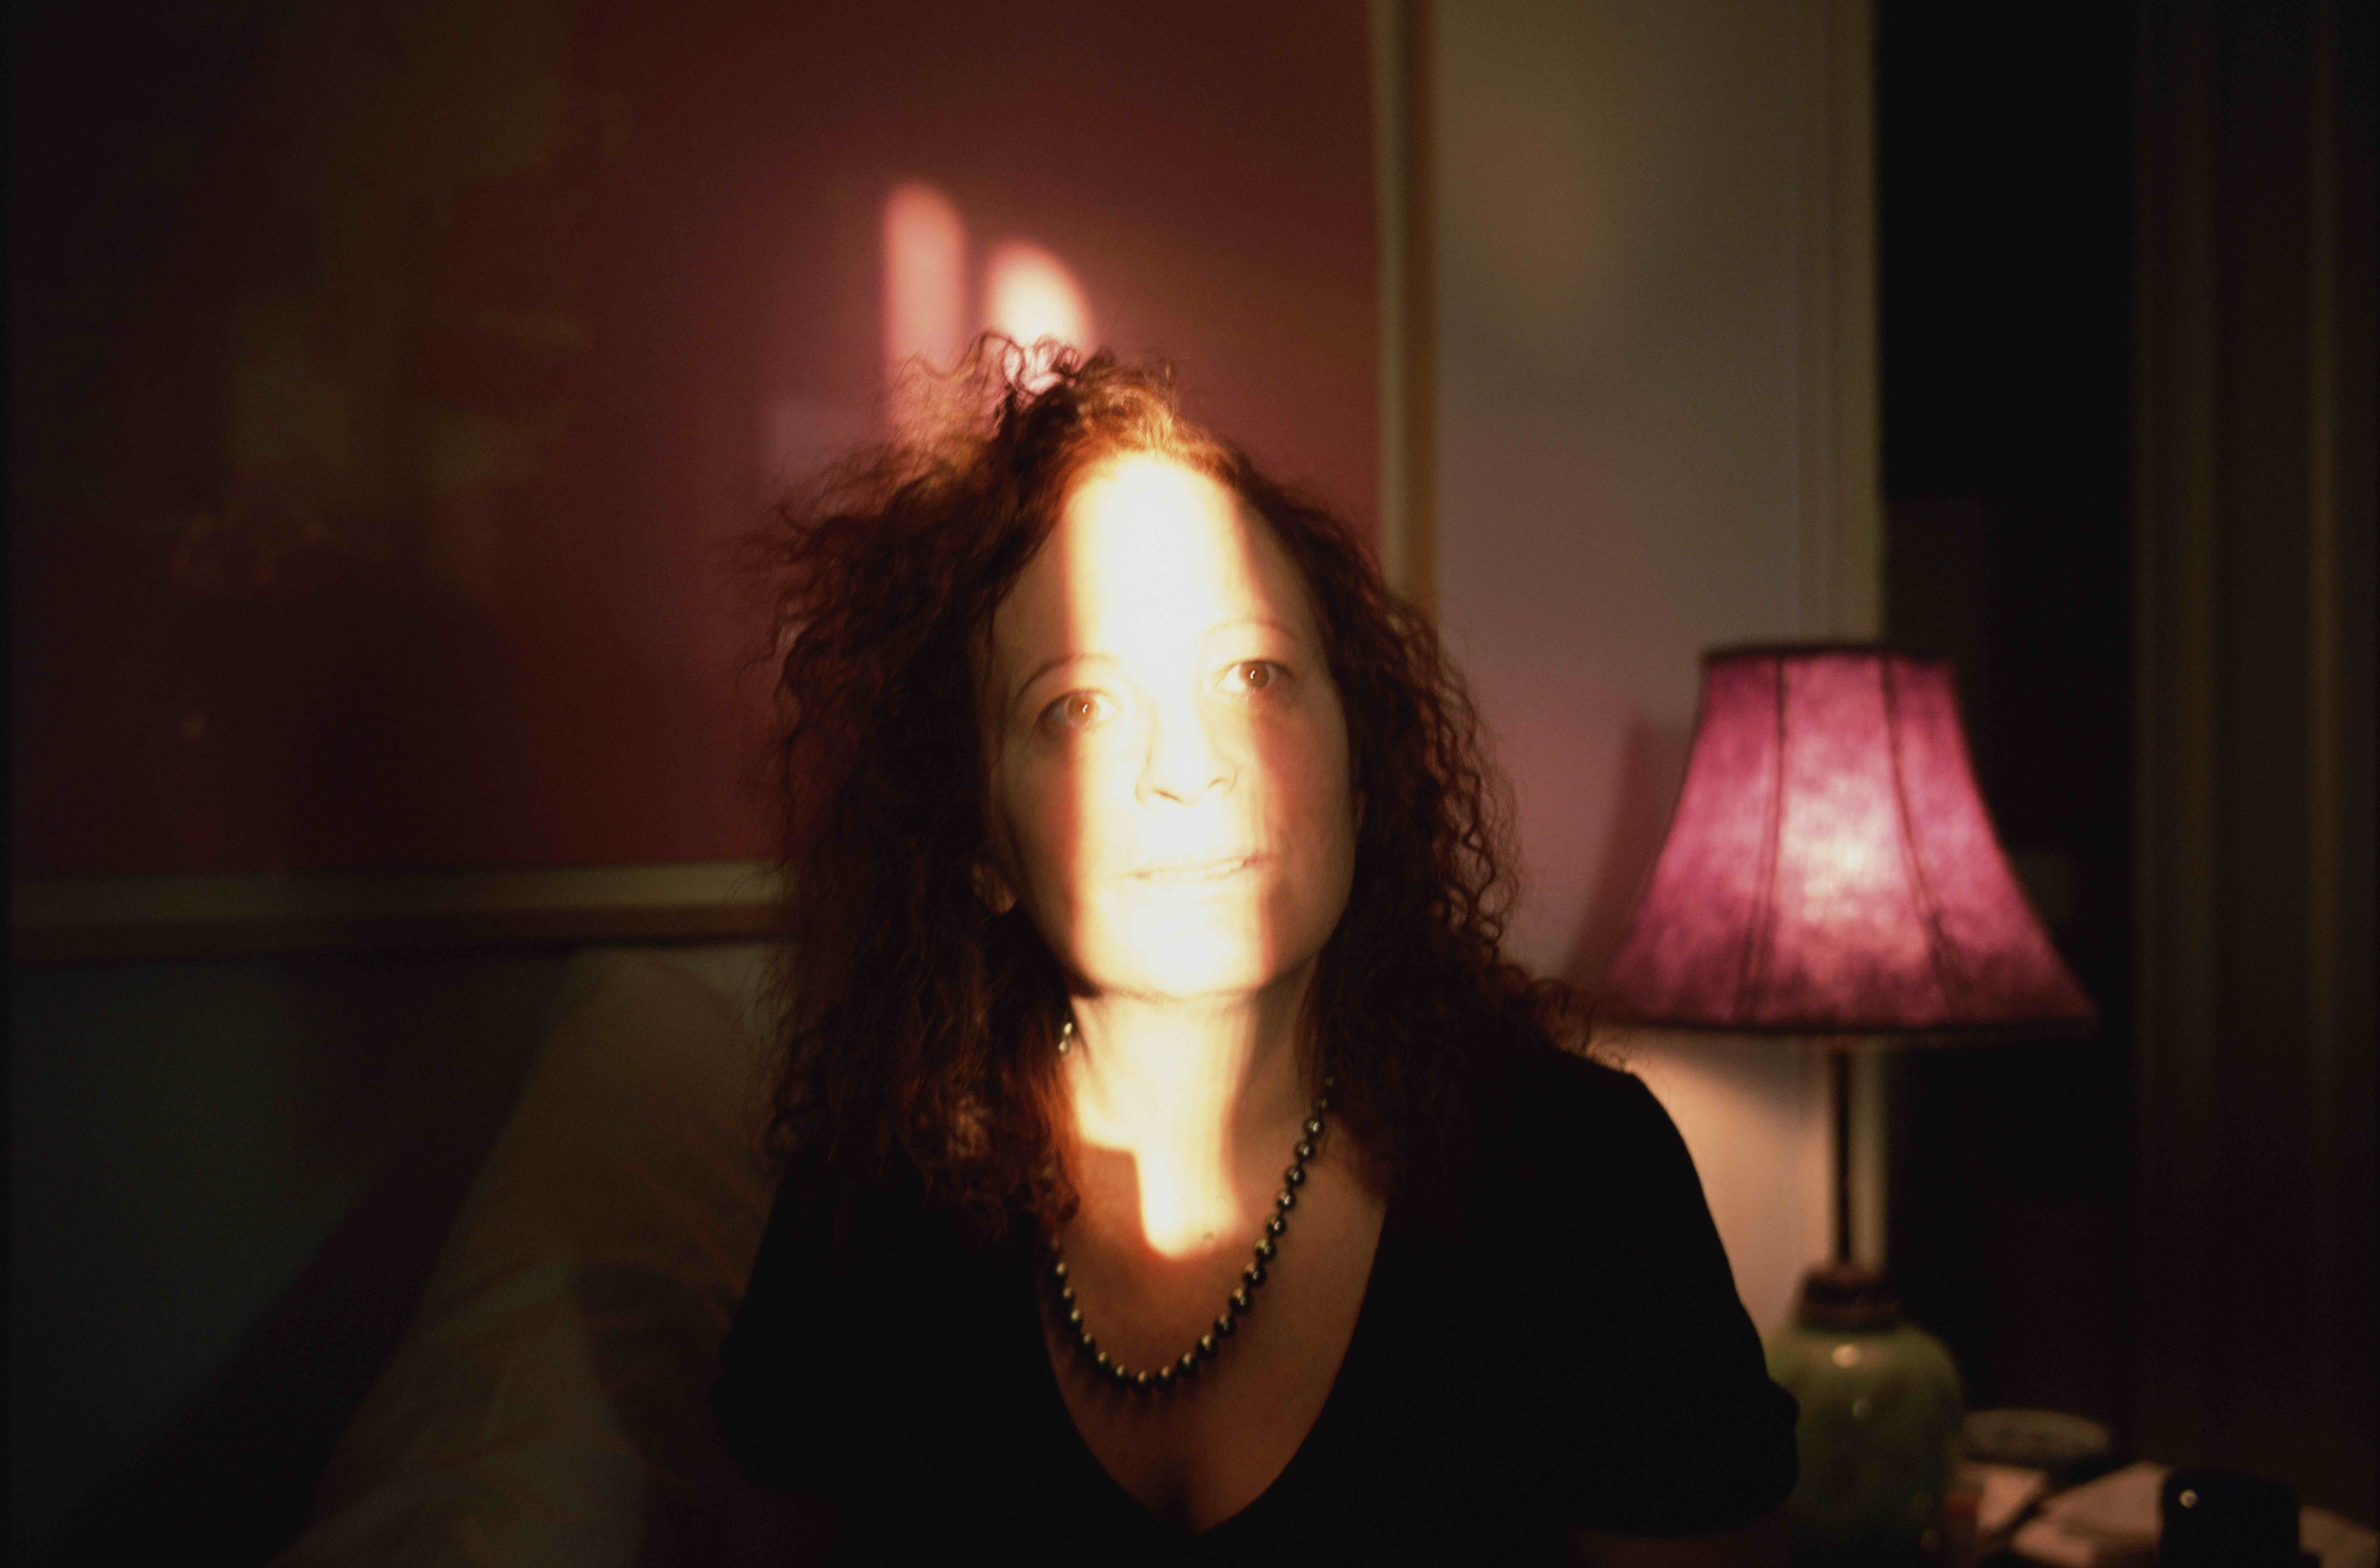 Nan Goldin, In My Room, Paris, n.d. Courtesy the artist and Marian Goodman Gallery, New York, Paris, and London.